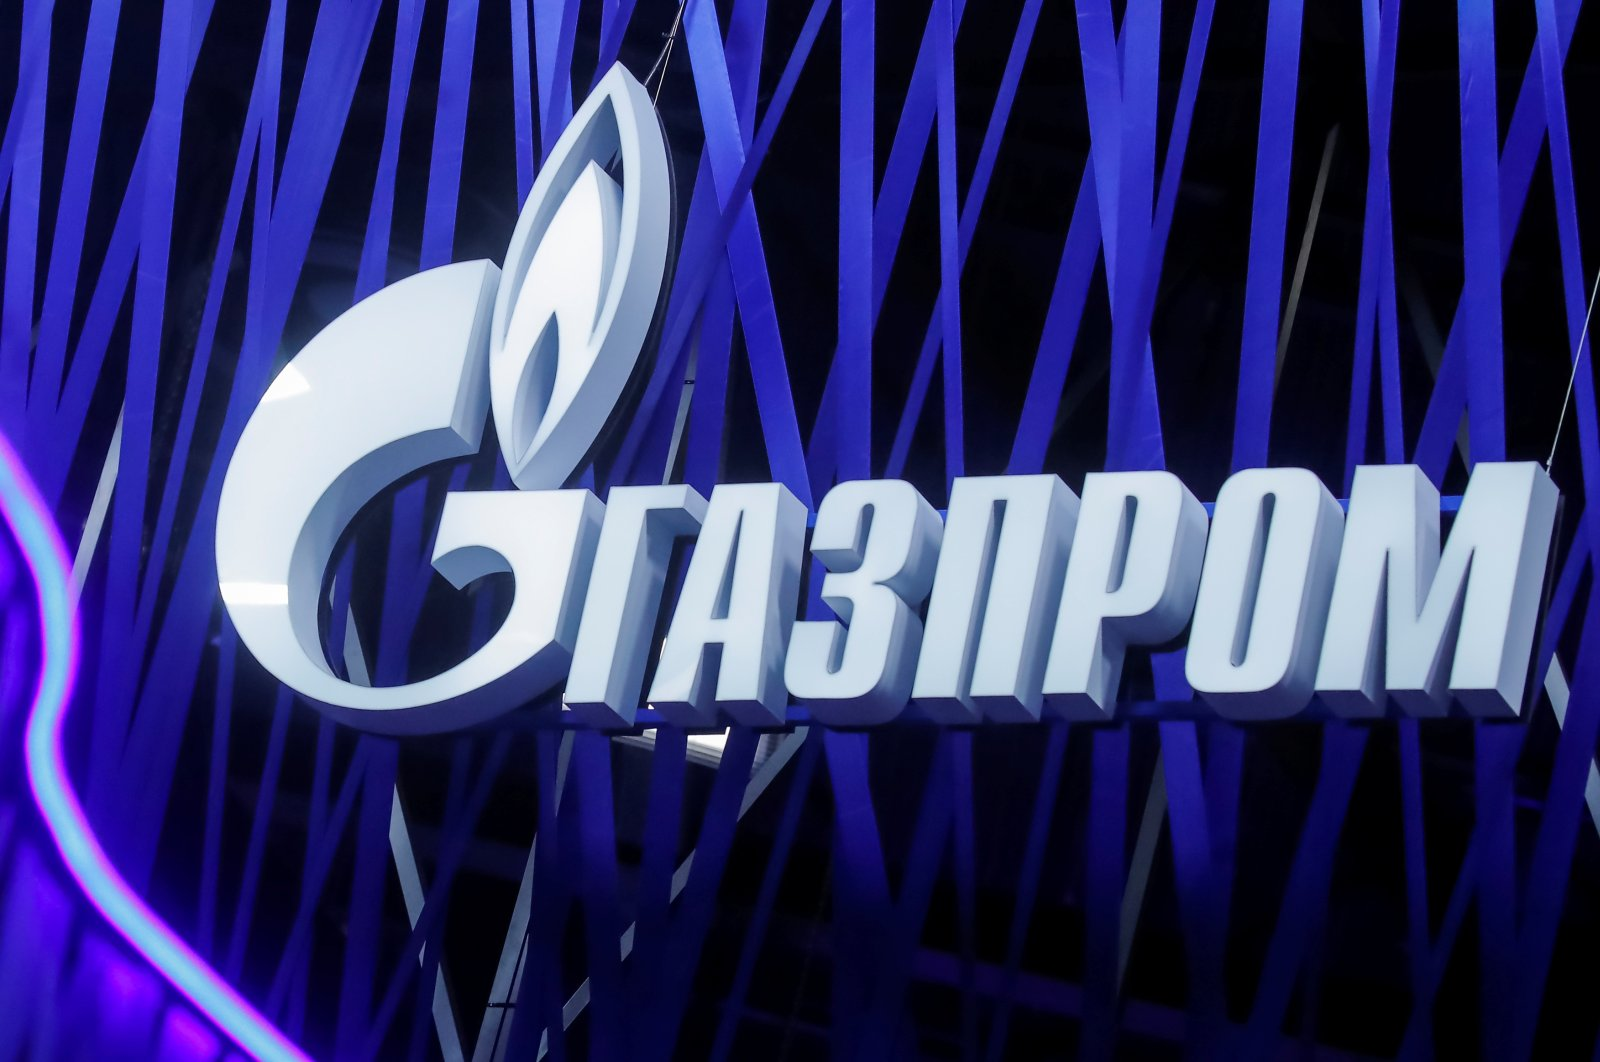 Russian gas giant Gazprom's logo is seen on a board at the St. Petersburg International Economic Forum (SPIEF), St. Petersburg, Russia, June 6, 2019. (Reuters Photo)